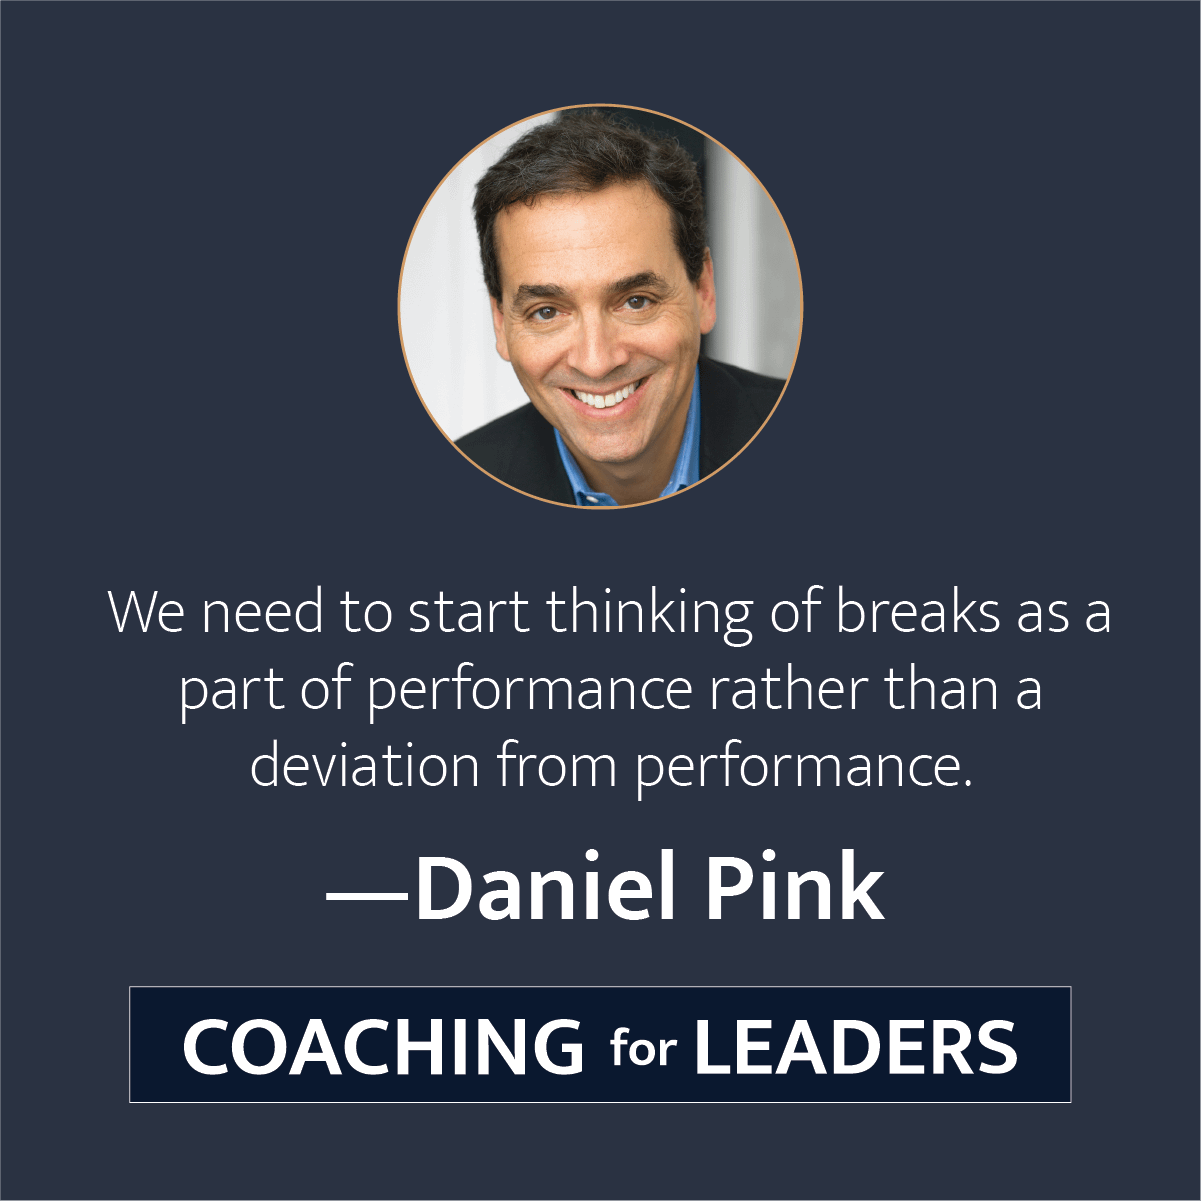 We need to start thinking of breaks as a part of performance rather than a deviation from performance.